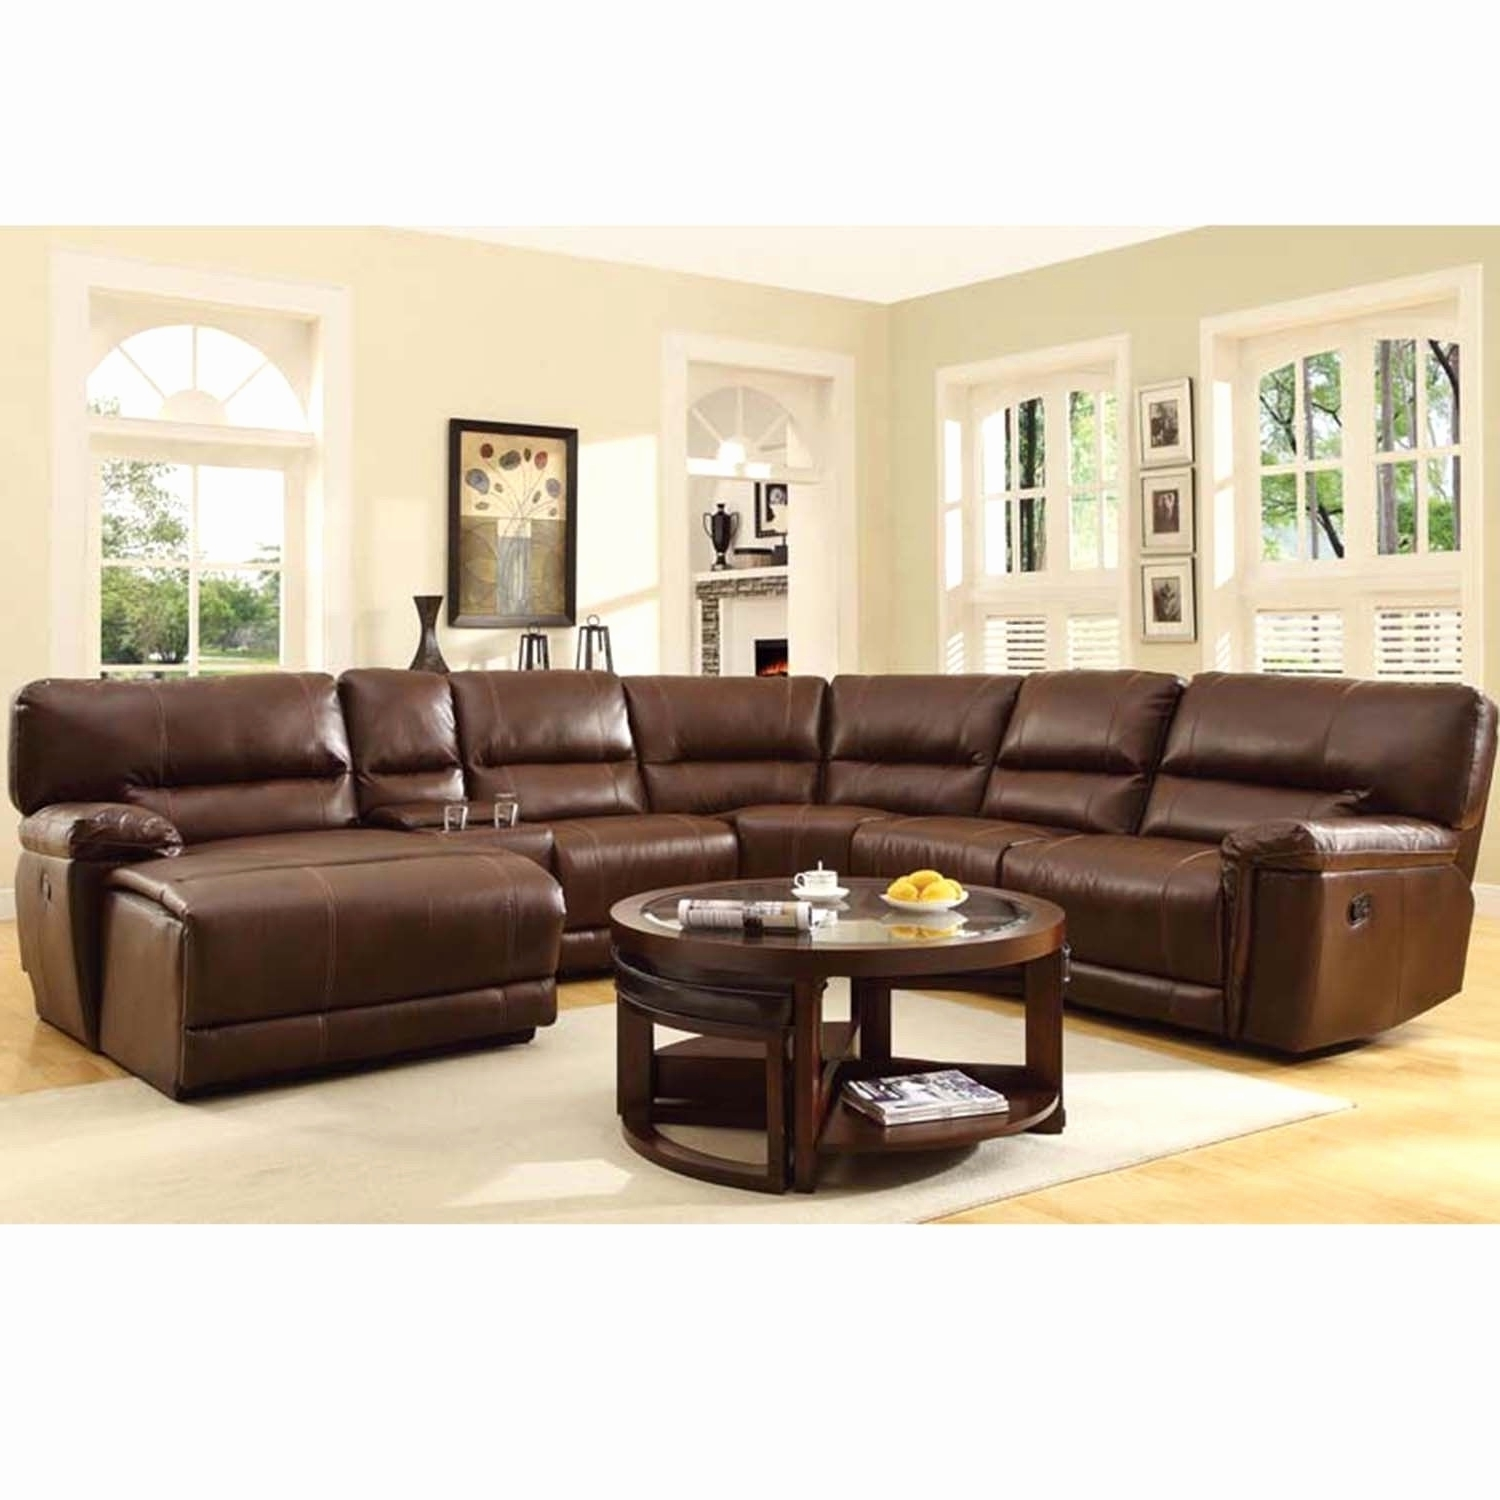 Sofas : Sofa For Small Living Room Gray Sectional Living Room For Newest Sectional Sofas For Small Rooms (View 15 of 15)